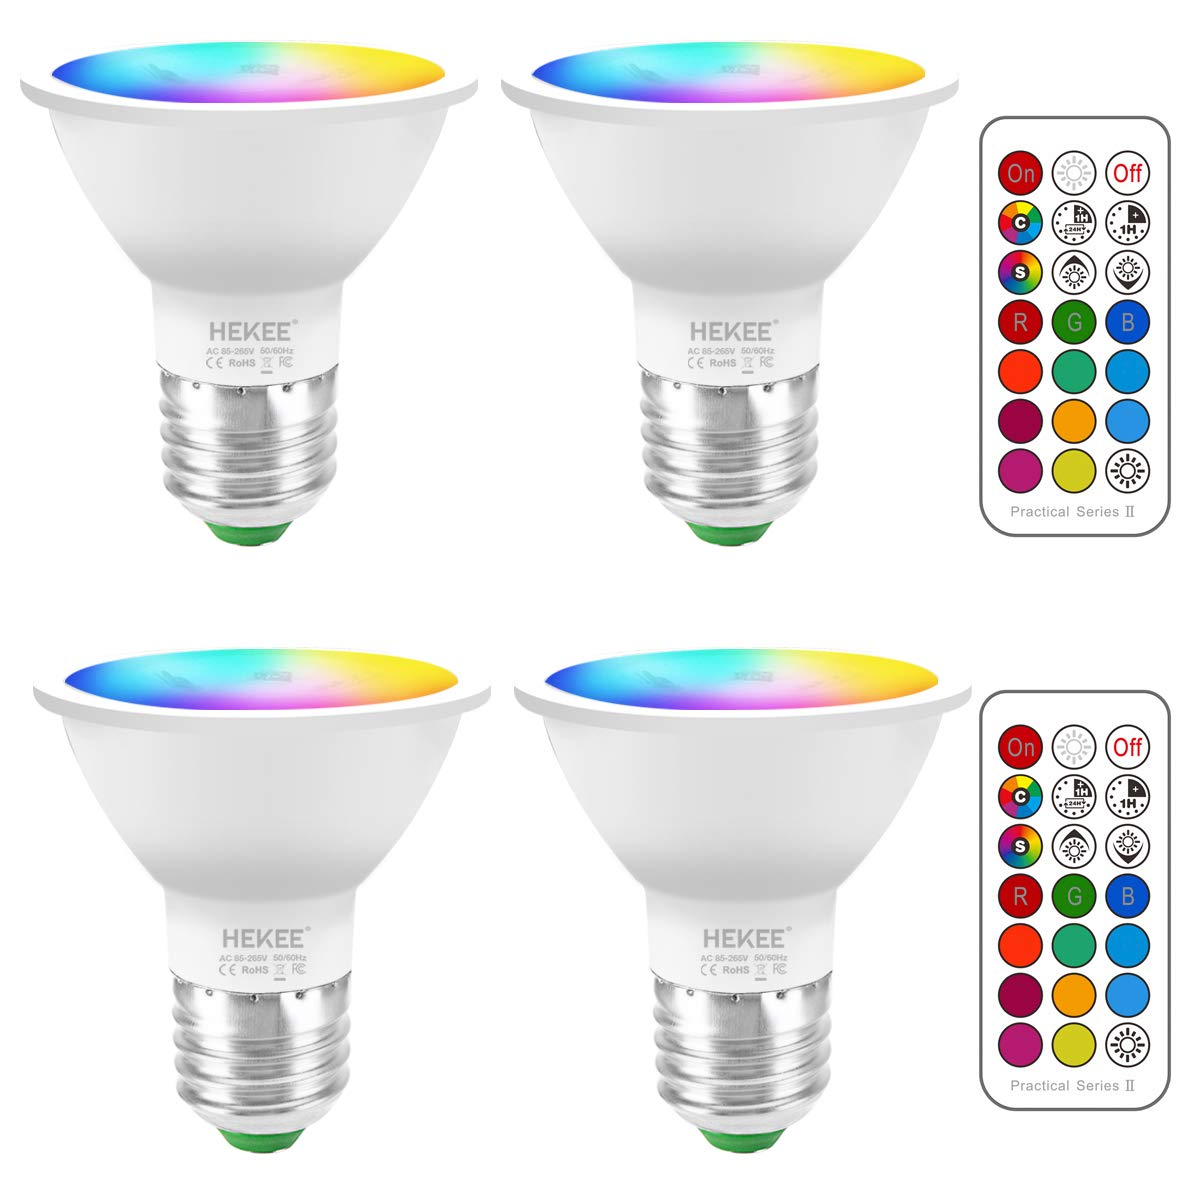 LED Light Bulbs Color Changing 5W E26 Screw 45°, 12 Colors Dimmable Warm White 2700K RGB LED Spot Light Bulb with Remote Control, 20 Watt Equivalent (Pack of 4)